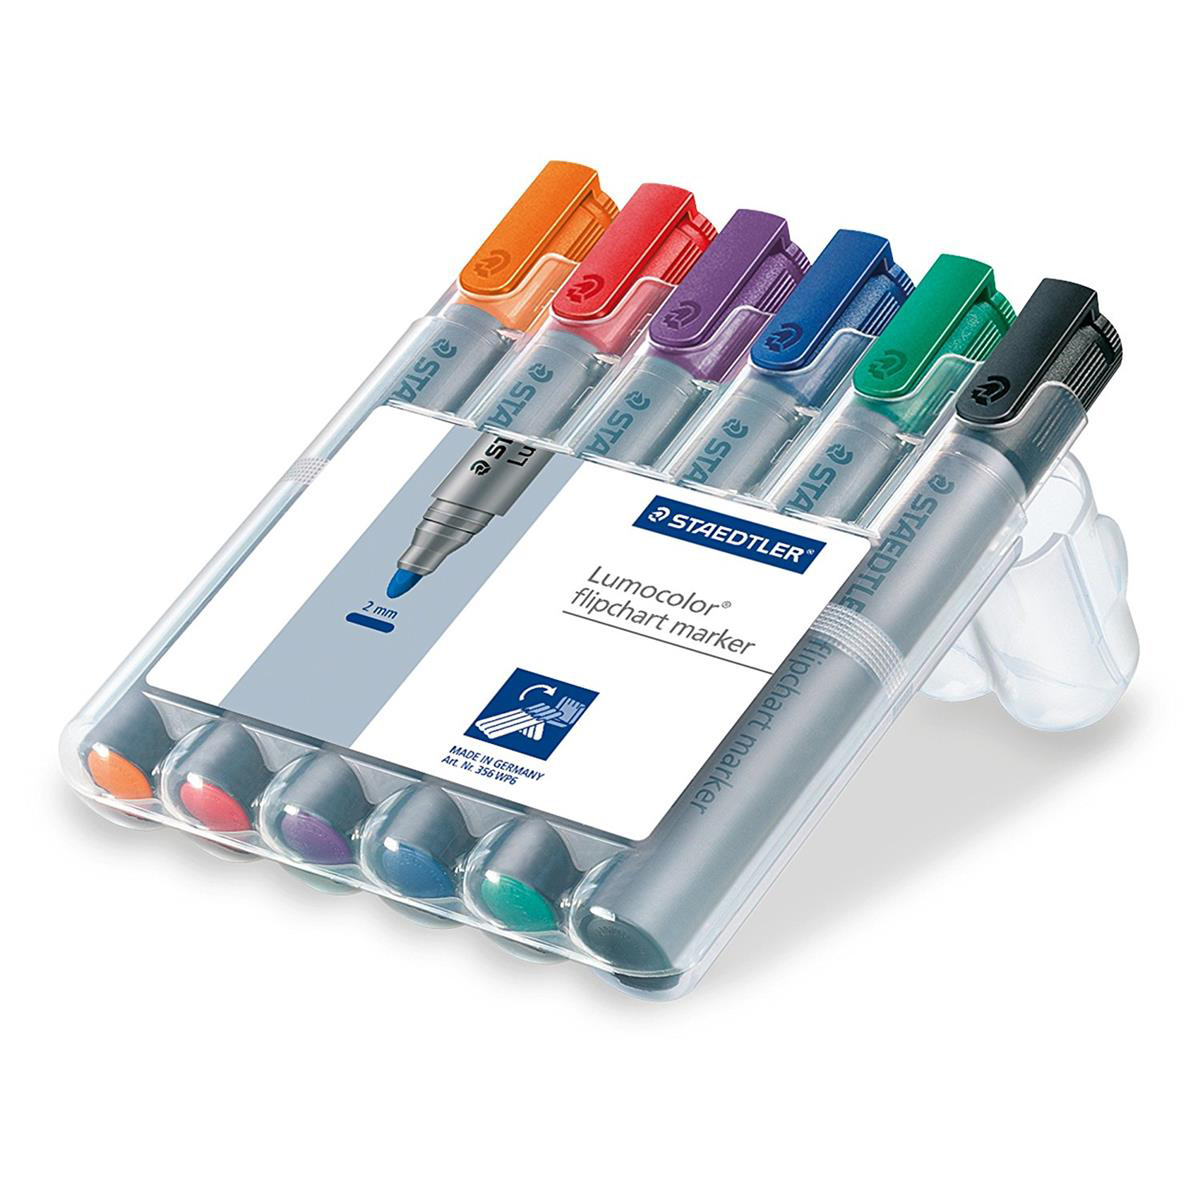 Staedtler Lumocolor Flipchart Markers Water-based Dry-safe Bullet Tip 2mm Assorted Ref 356 WP6 Pack 6